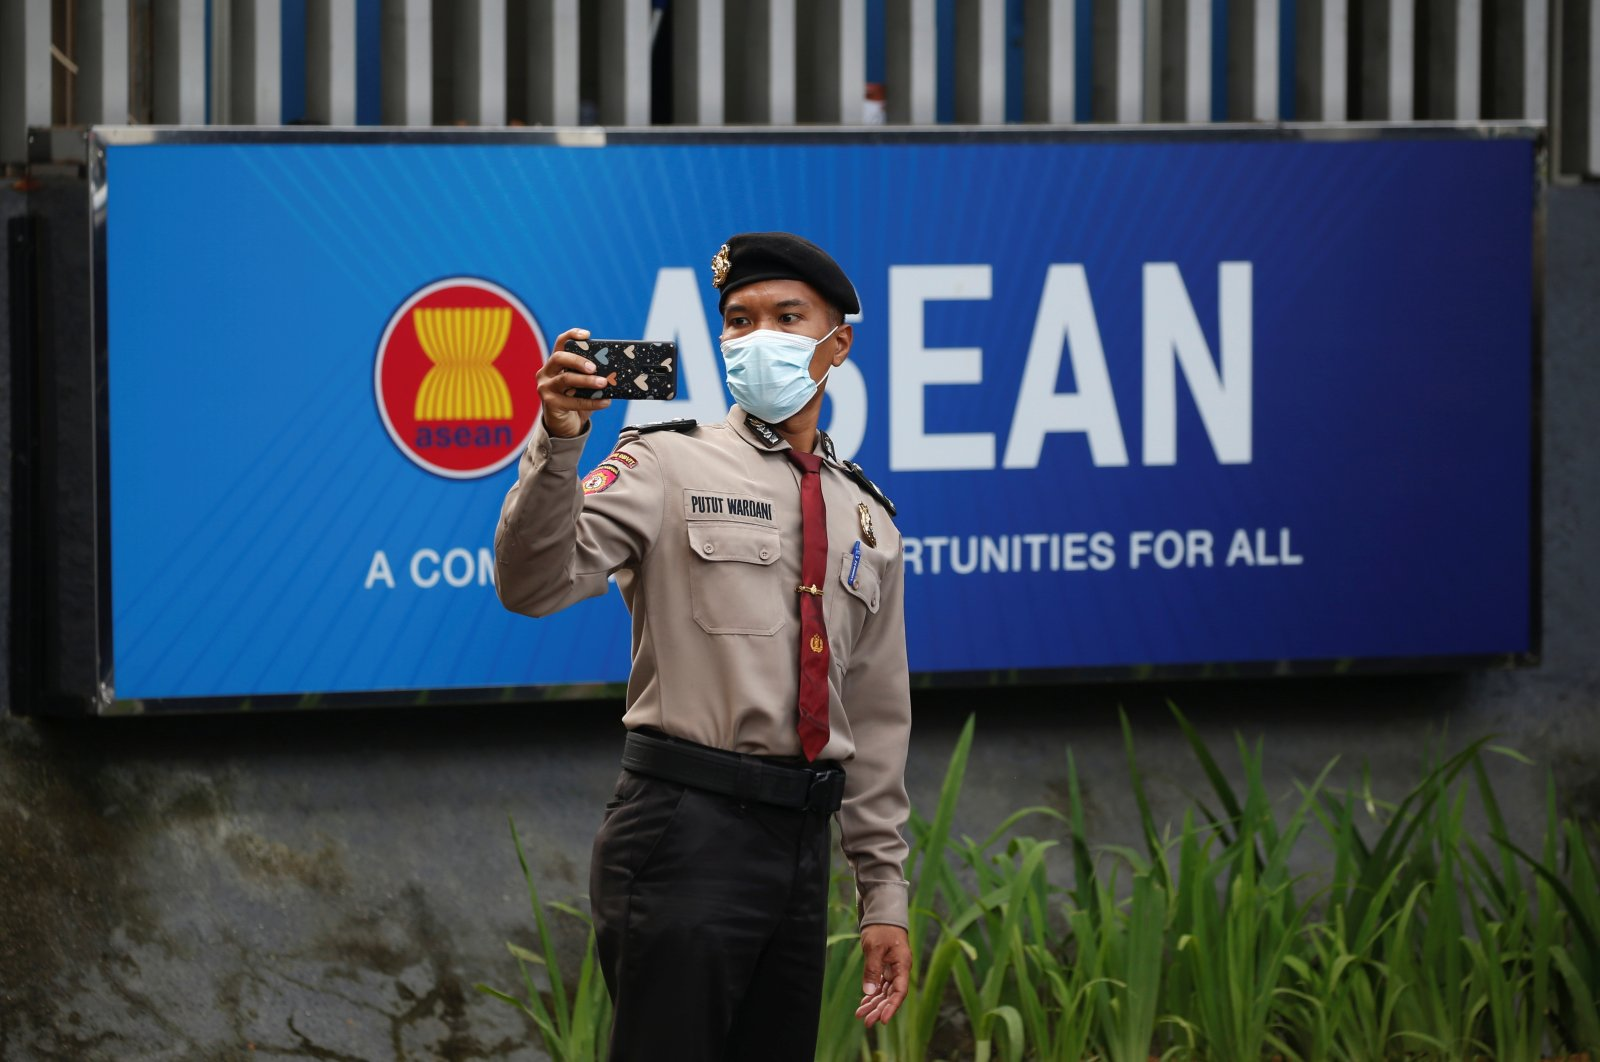 A police officer takes a picture outside the Association of Southeast Asian Nations (ASEAN) secretariat building, ahead of the ASEAN leaders' meeting in Jakarta, Indonesia, April 23, 2021. (Reuters Photo)